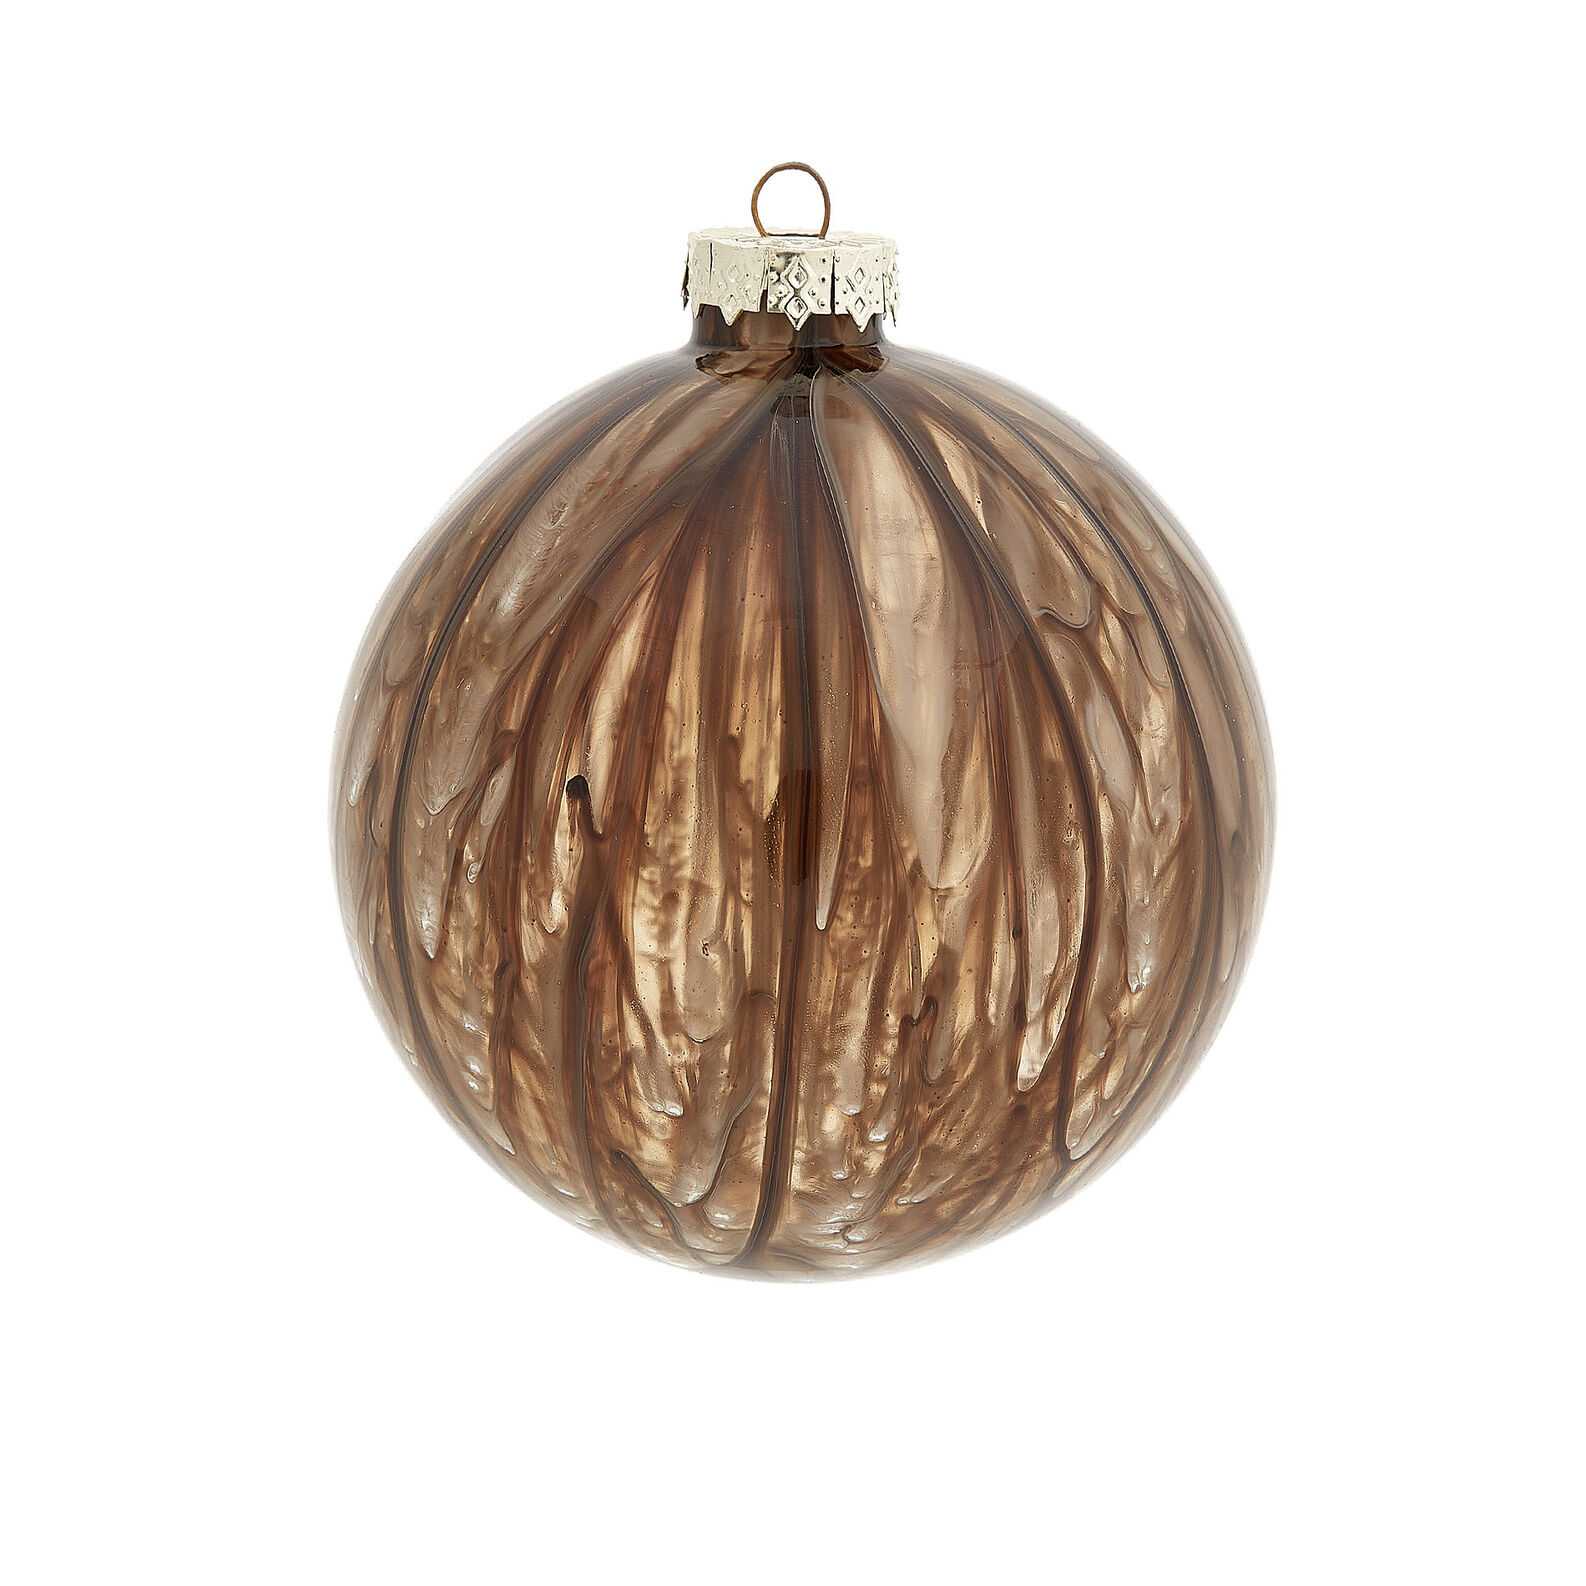 Hand-decorated bauble with brush strokes